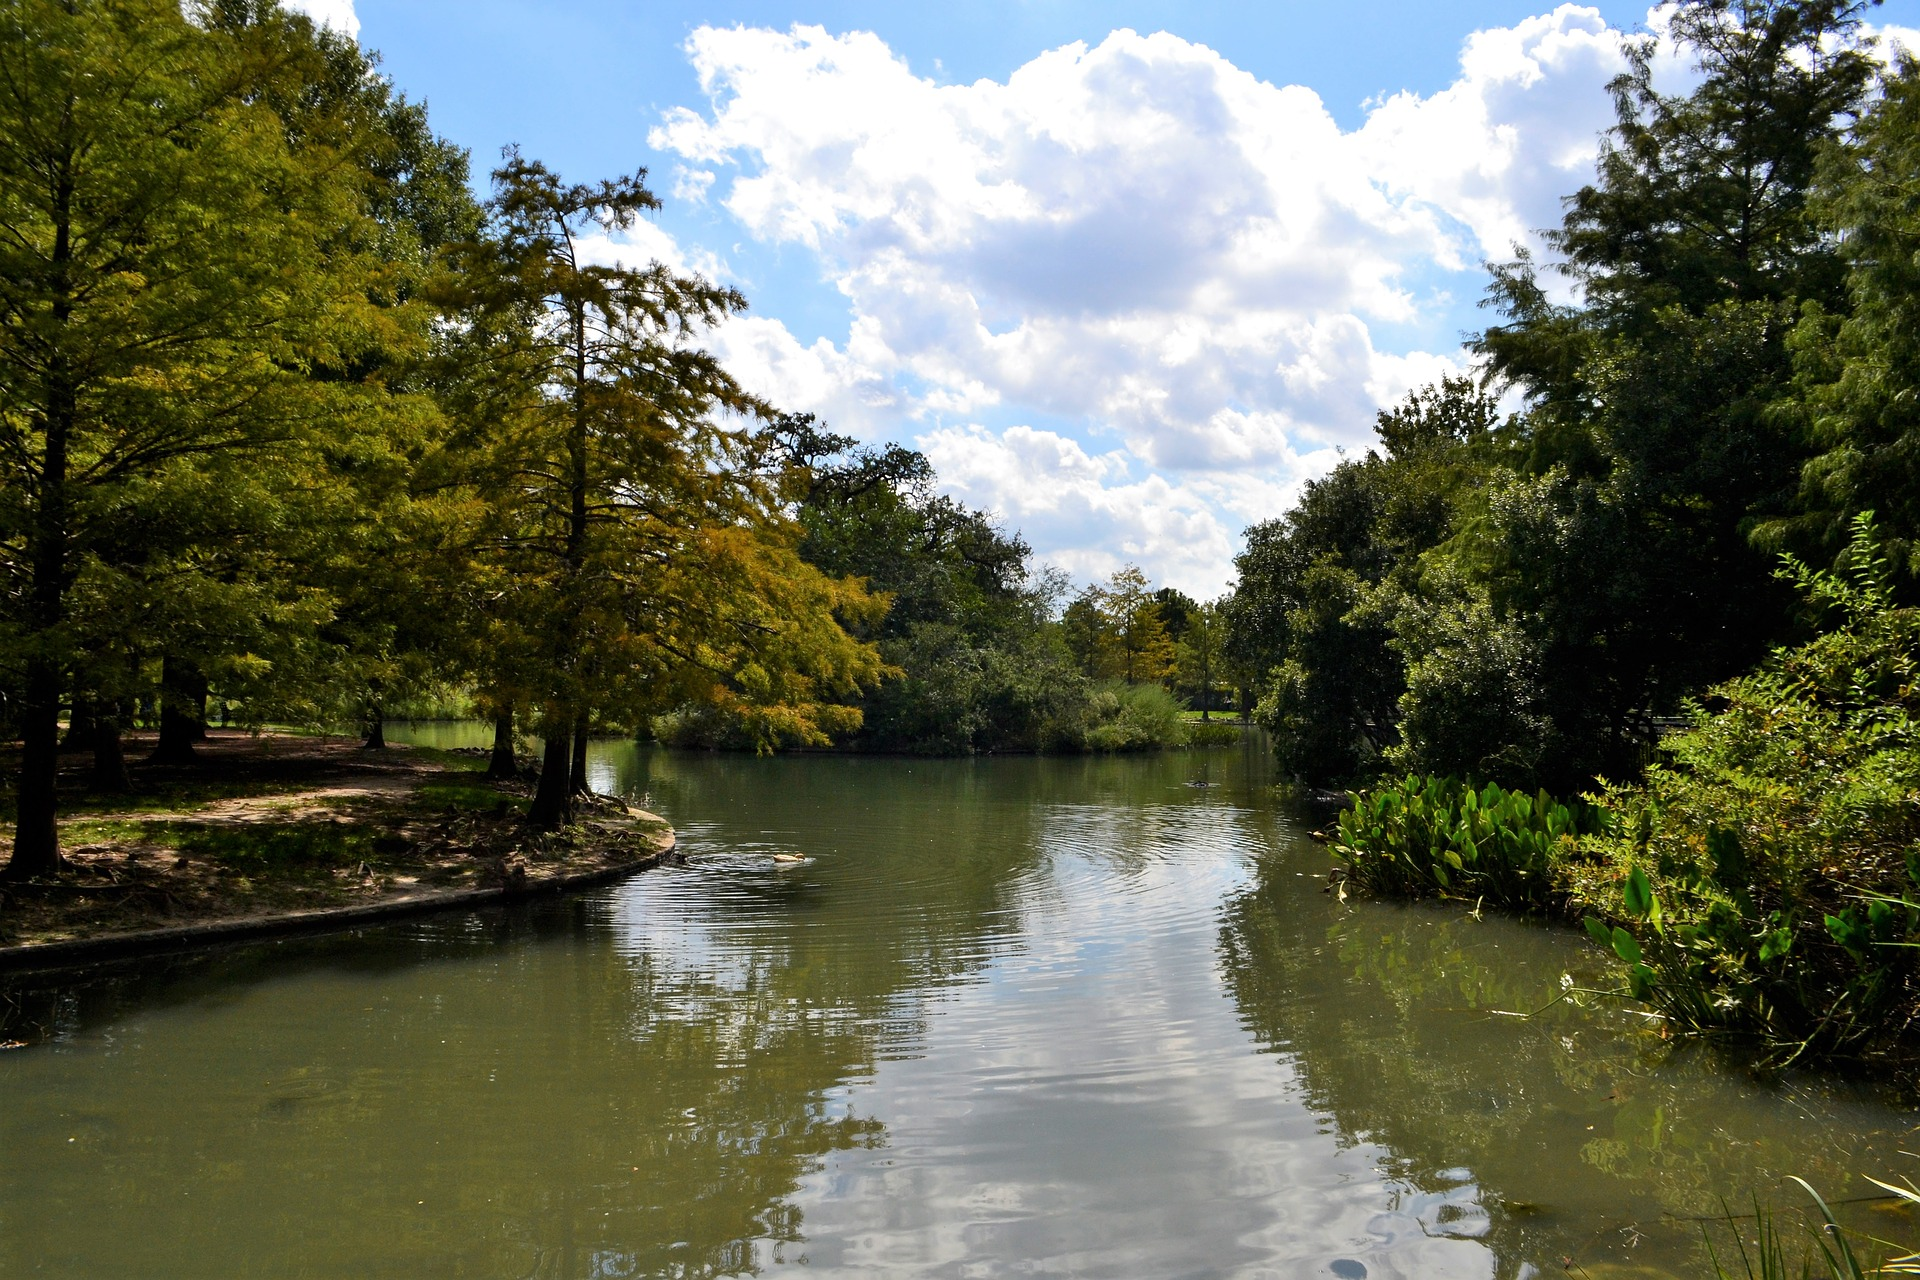 A waterway fringed with trees under a sunny sky with a few clouds.